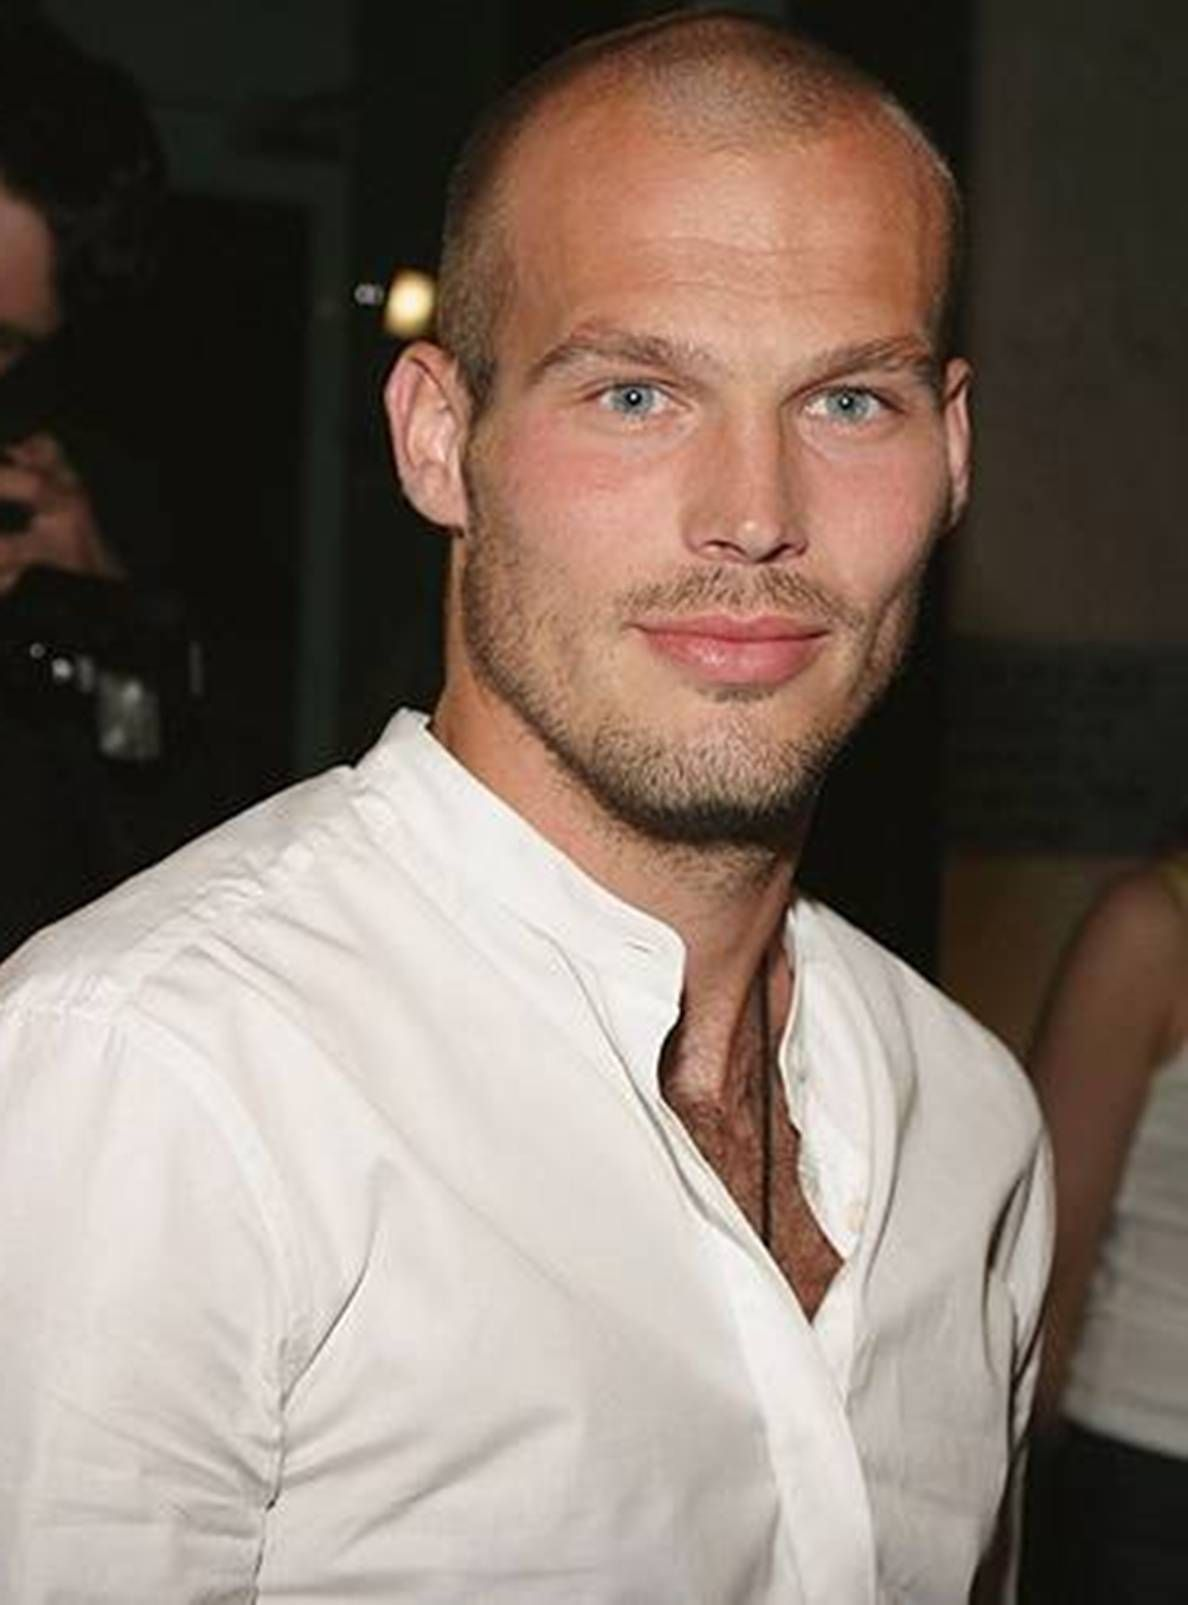 Hairstyles For Balding Men Alluring Sexy Bald Men  13 Reasons Why Bald Men Rule  Page 3 Of 5